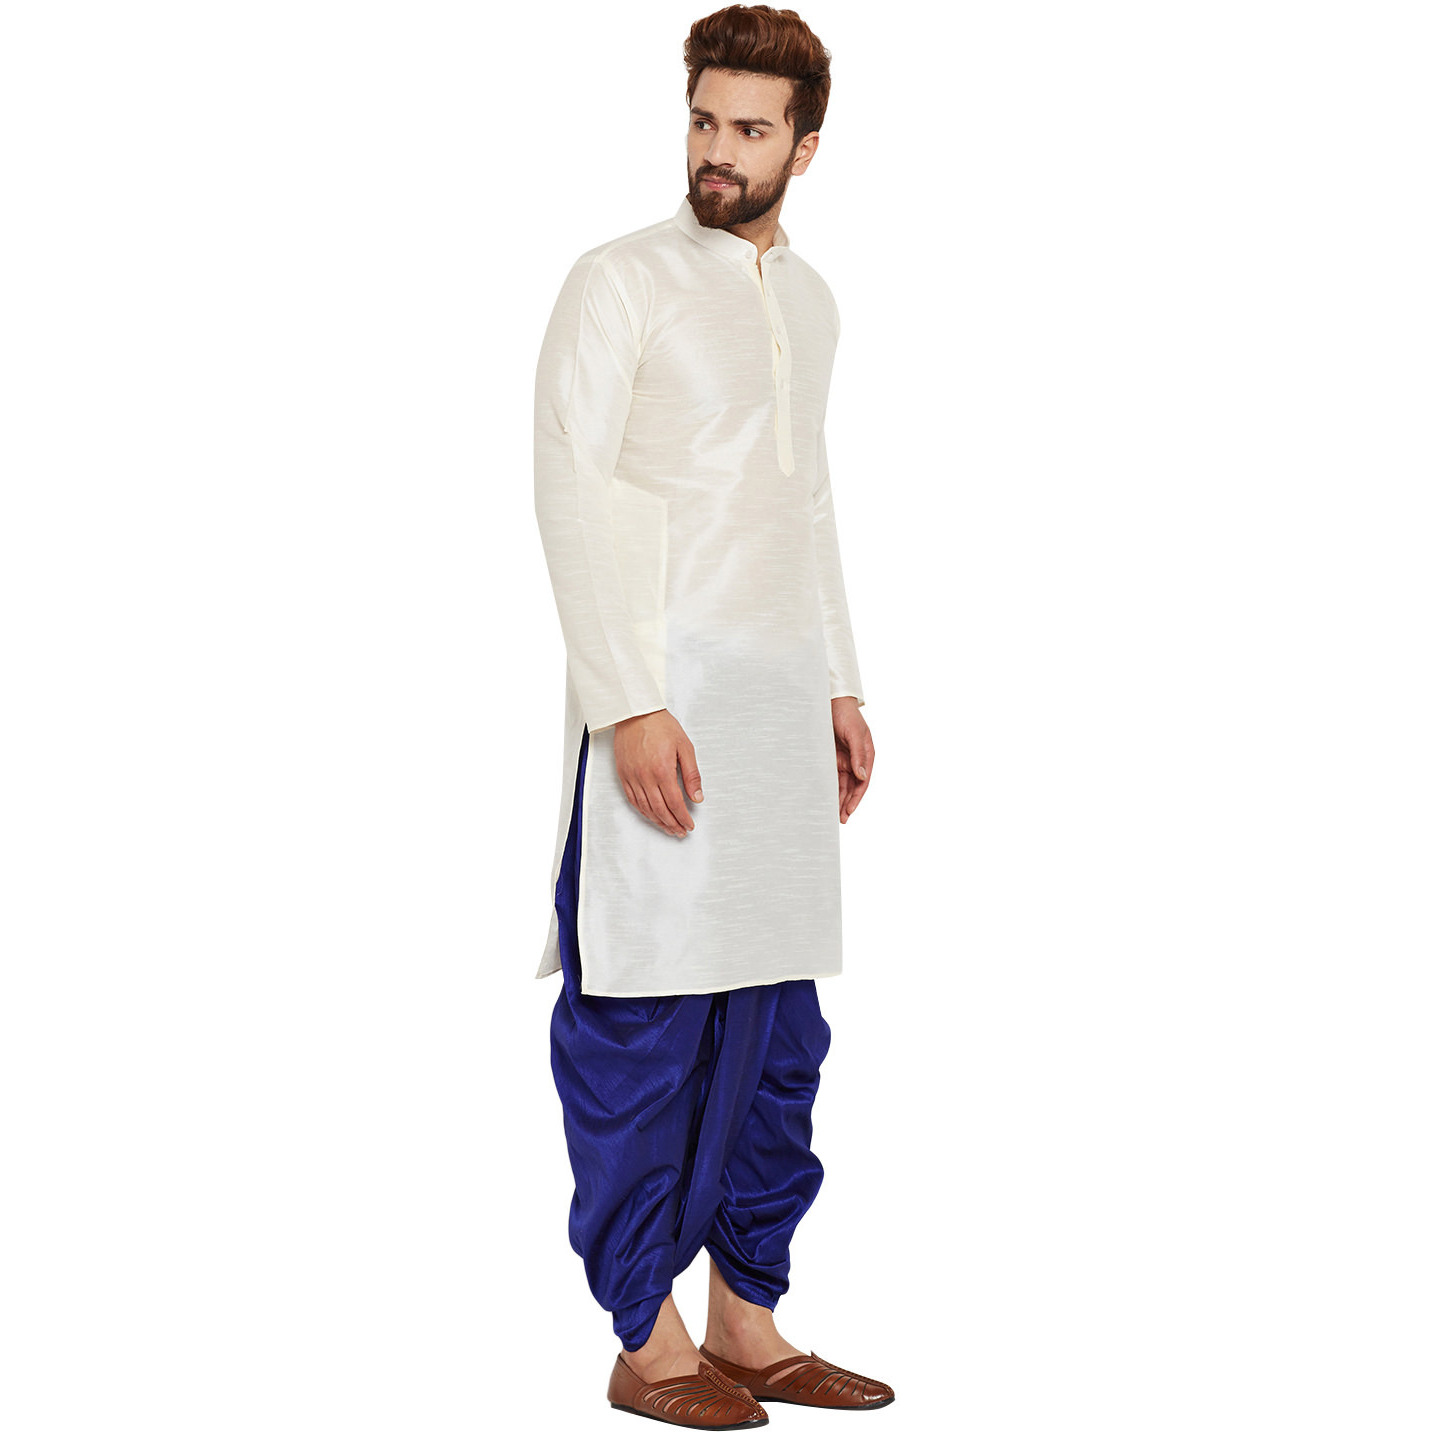 Sojanya (Since 1958)B Men's Traditional Ethnic Wear Dupion Silk Grey and Mustard Plain DhotiKurta Set Regular Fit